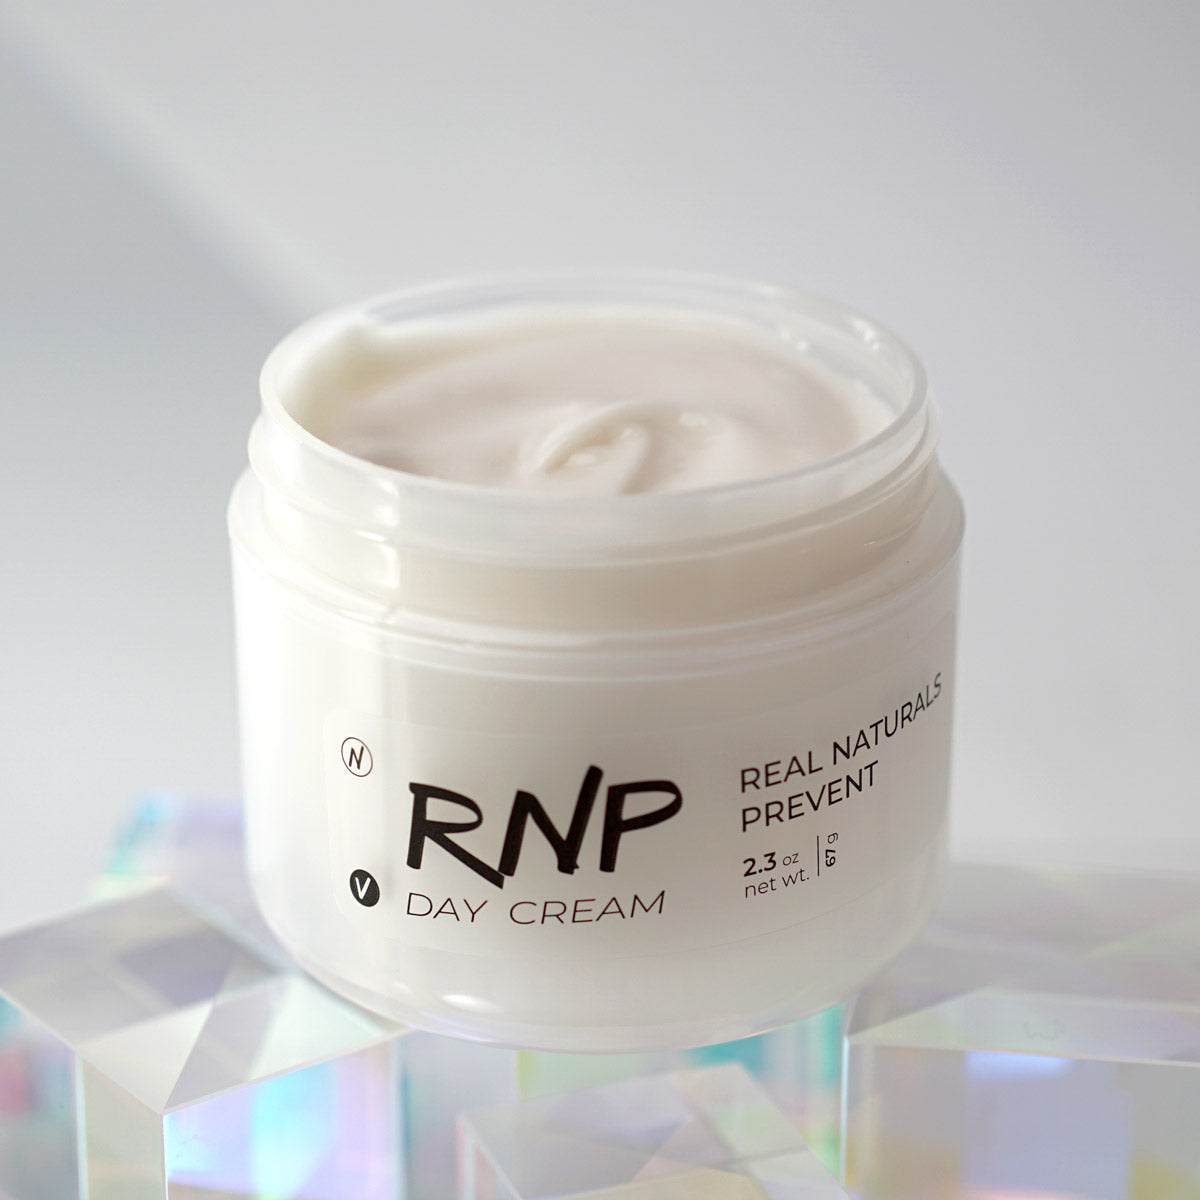 Real Naturals Prevent - 'RNP' Day Cream